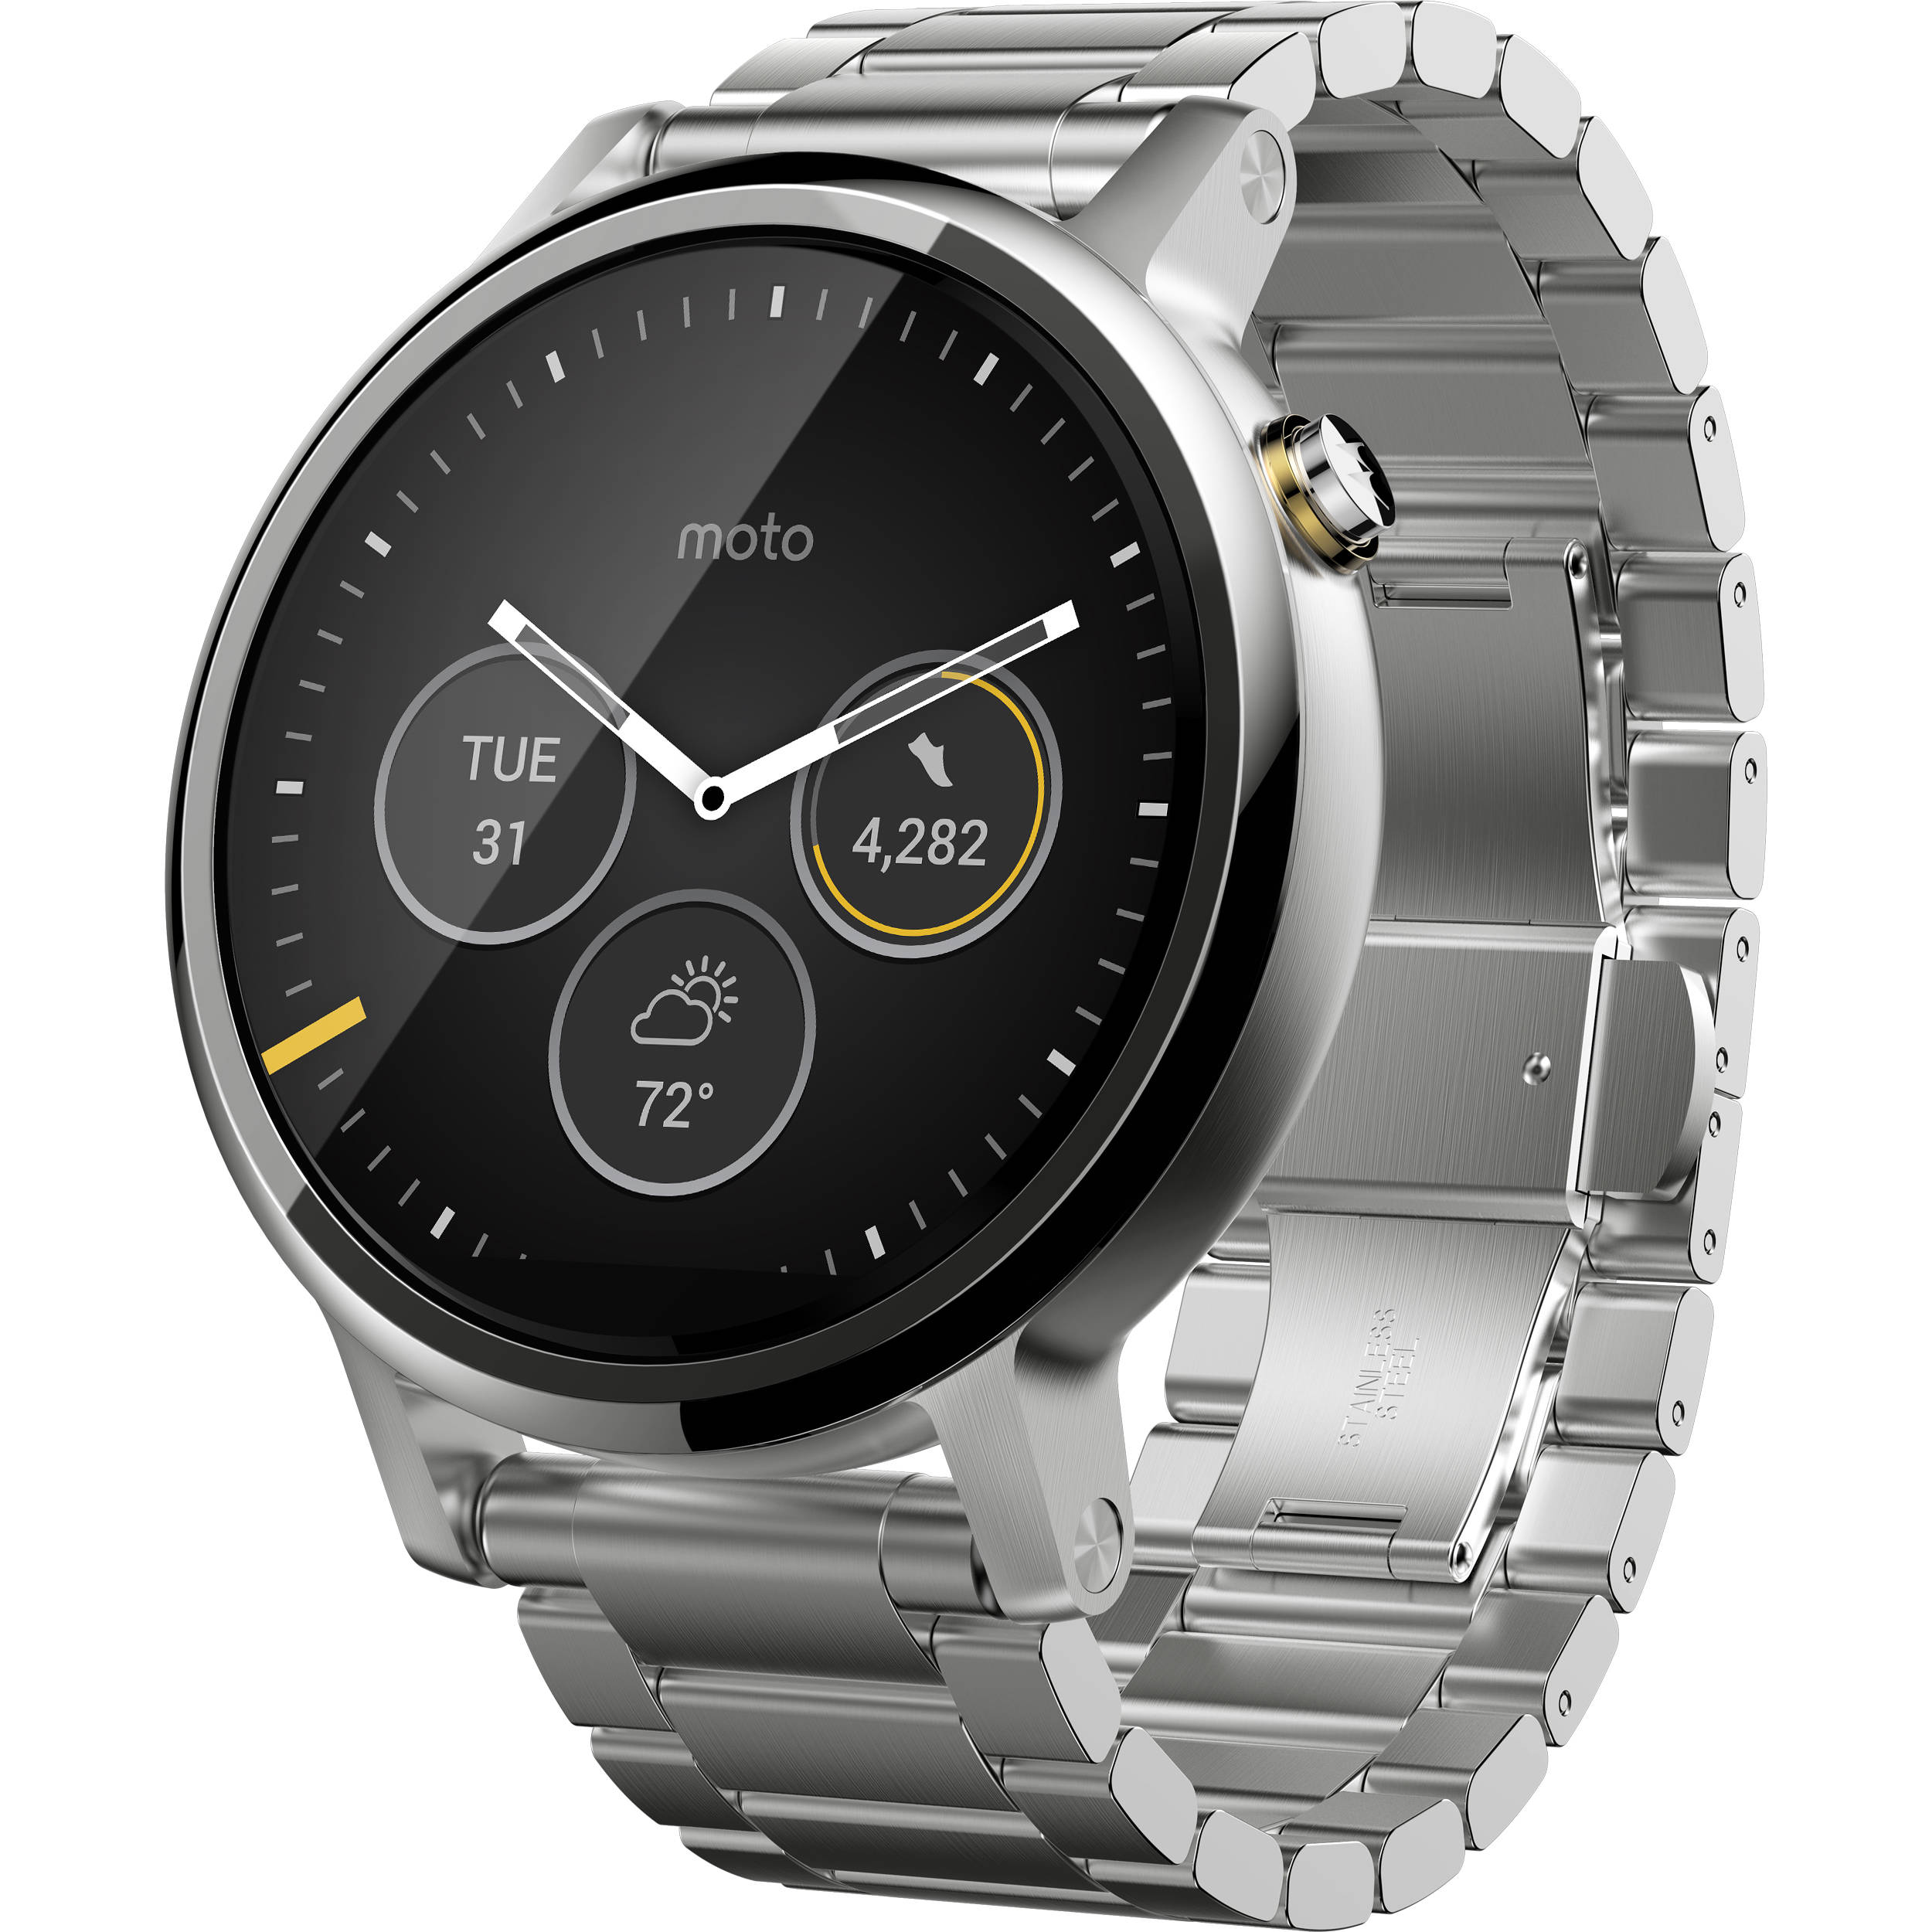 Moto 2nd Gen Moto 360 46mm Men's Smartwatch 00814NARTL B&H ...